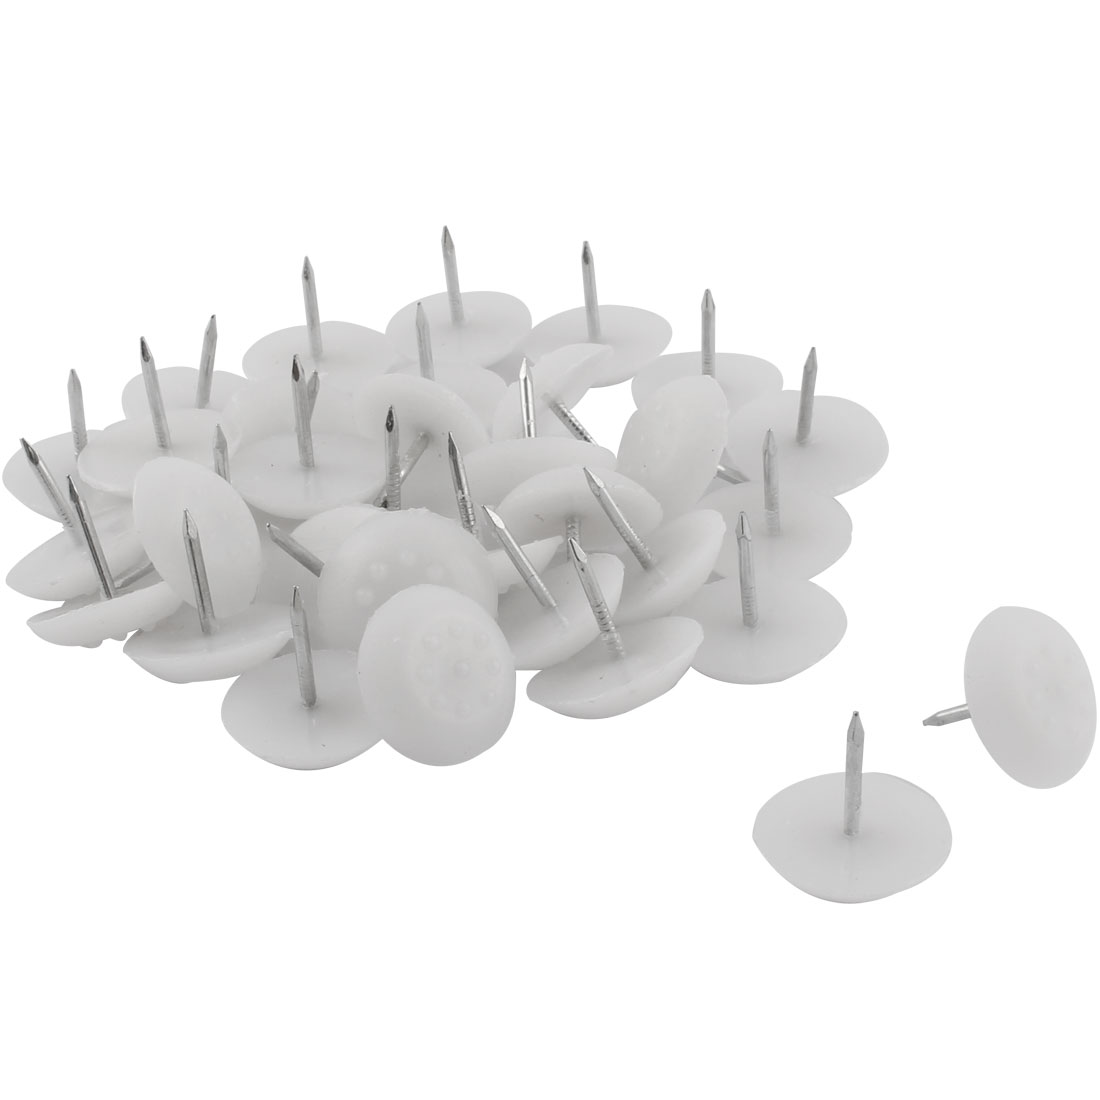 Furniture Table Chair Plastic Base Leg Floor Protector Nails Pad White 2.1cm Dia 30pcs